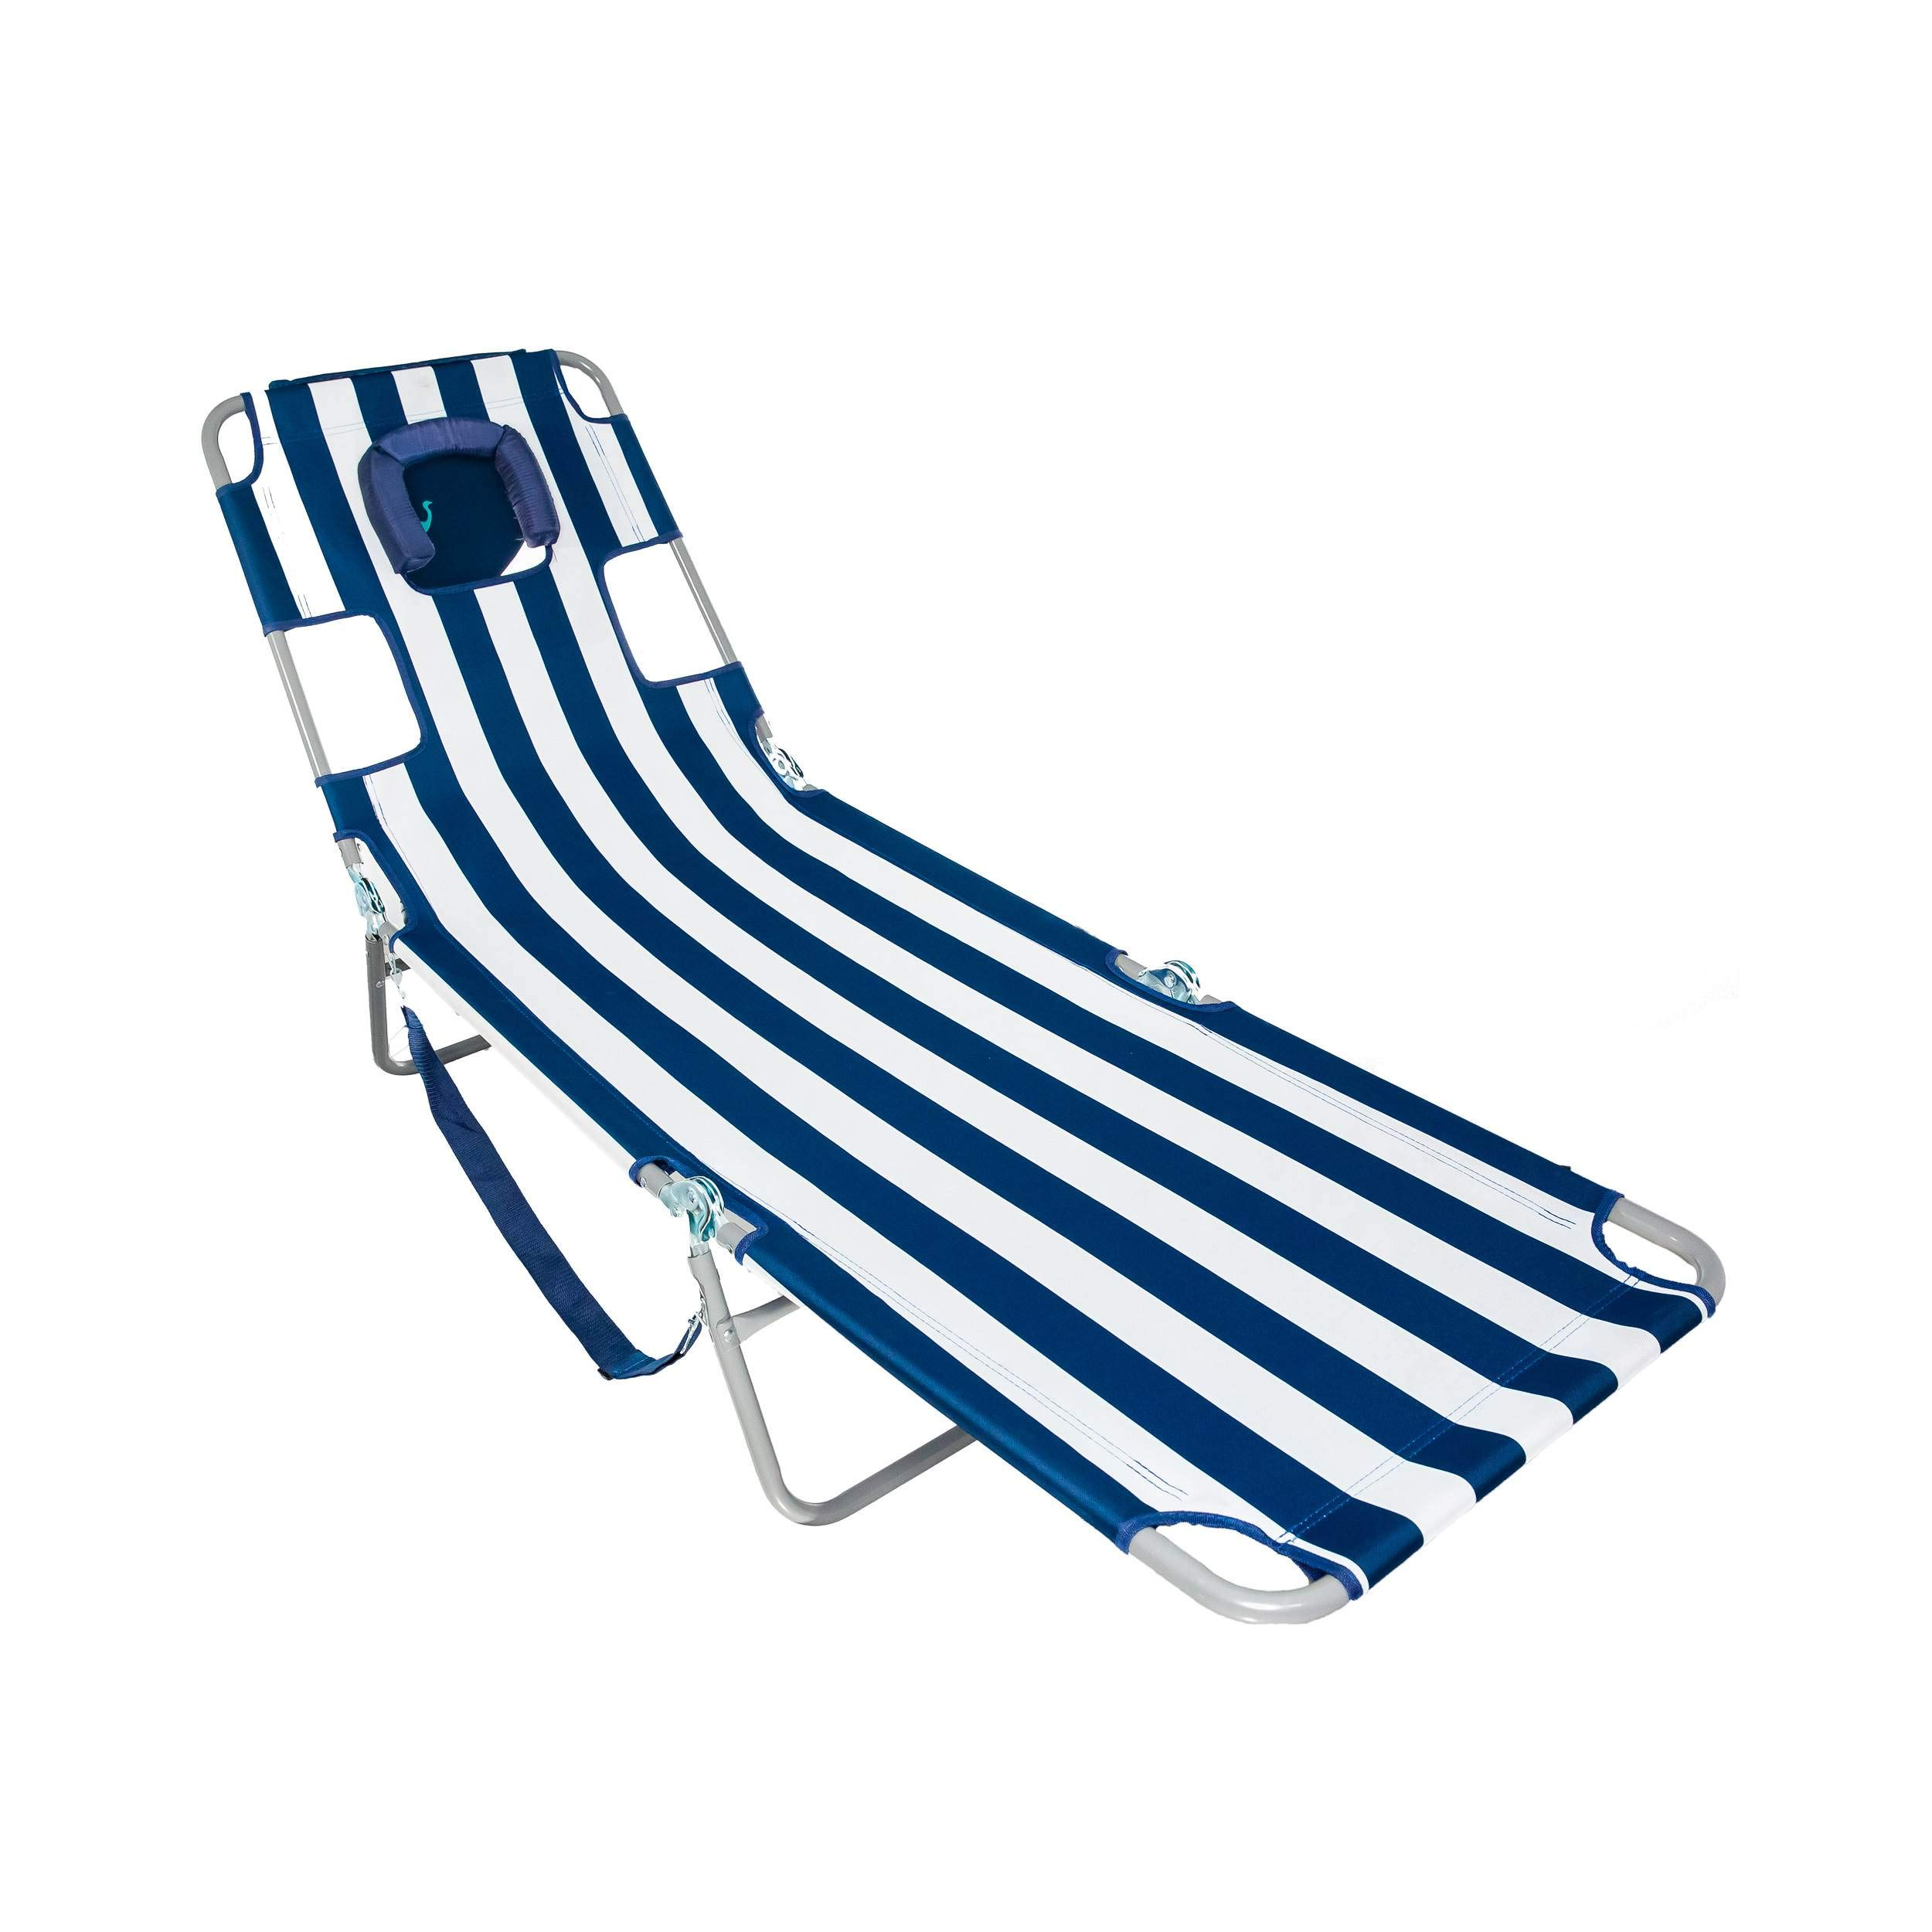 Ostrich CHS-1002S Chaise Lounge, 77.16 x 24.6 x 13.4 inches Assembled, Blue and White Striped by Ostrich